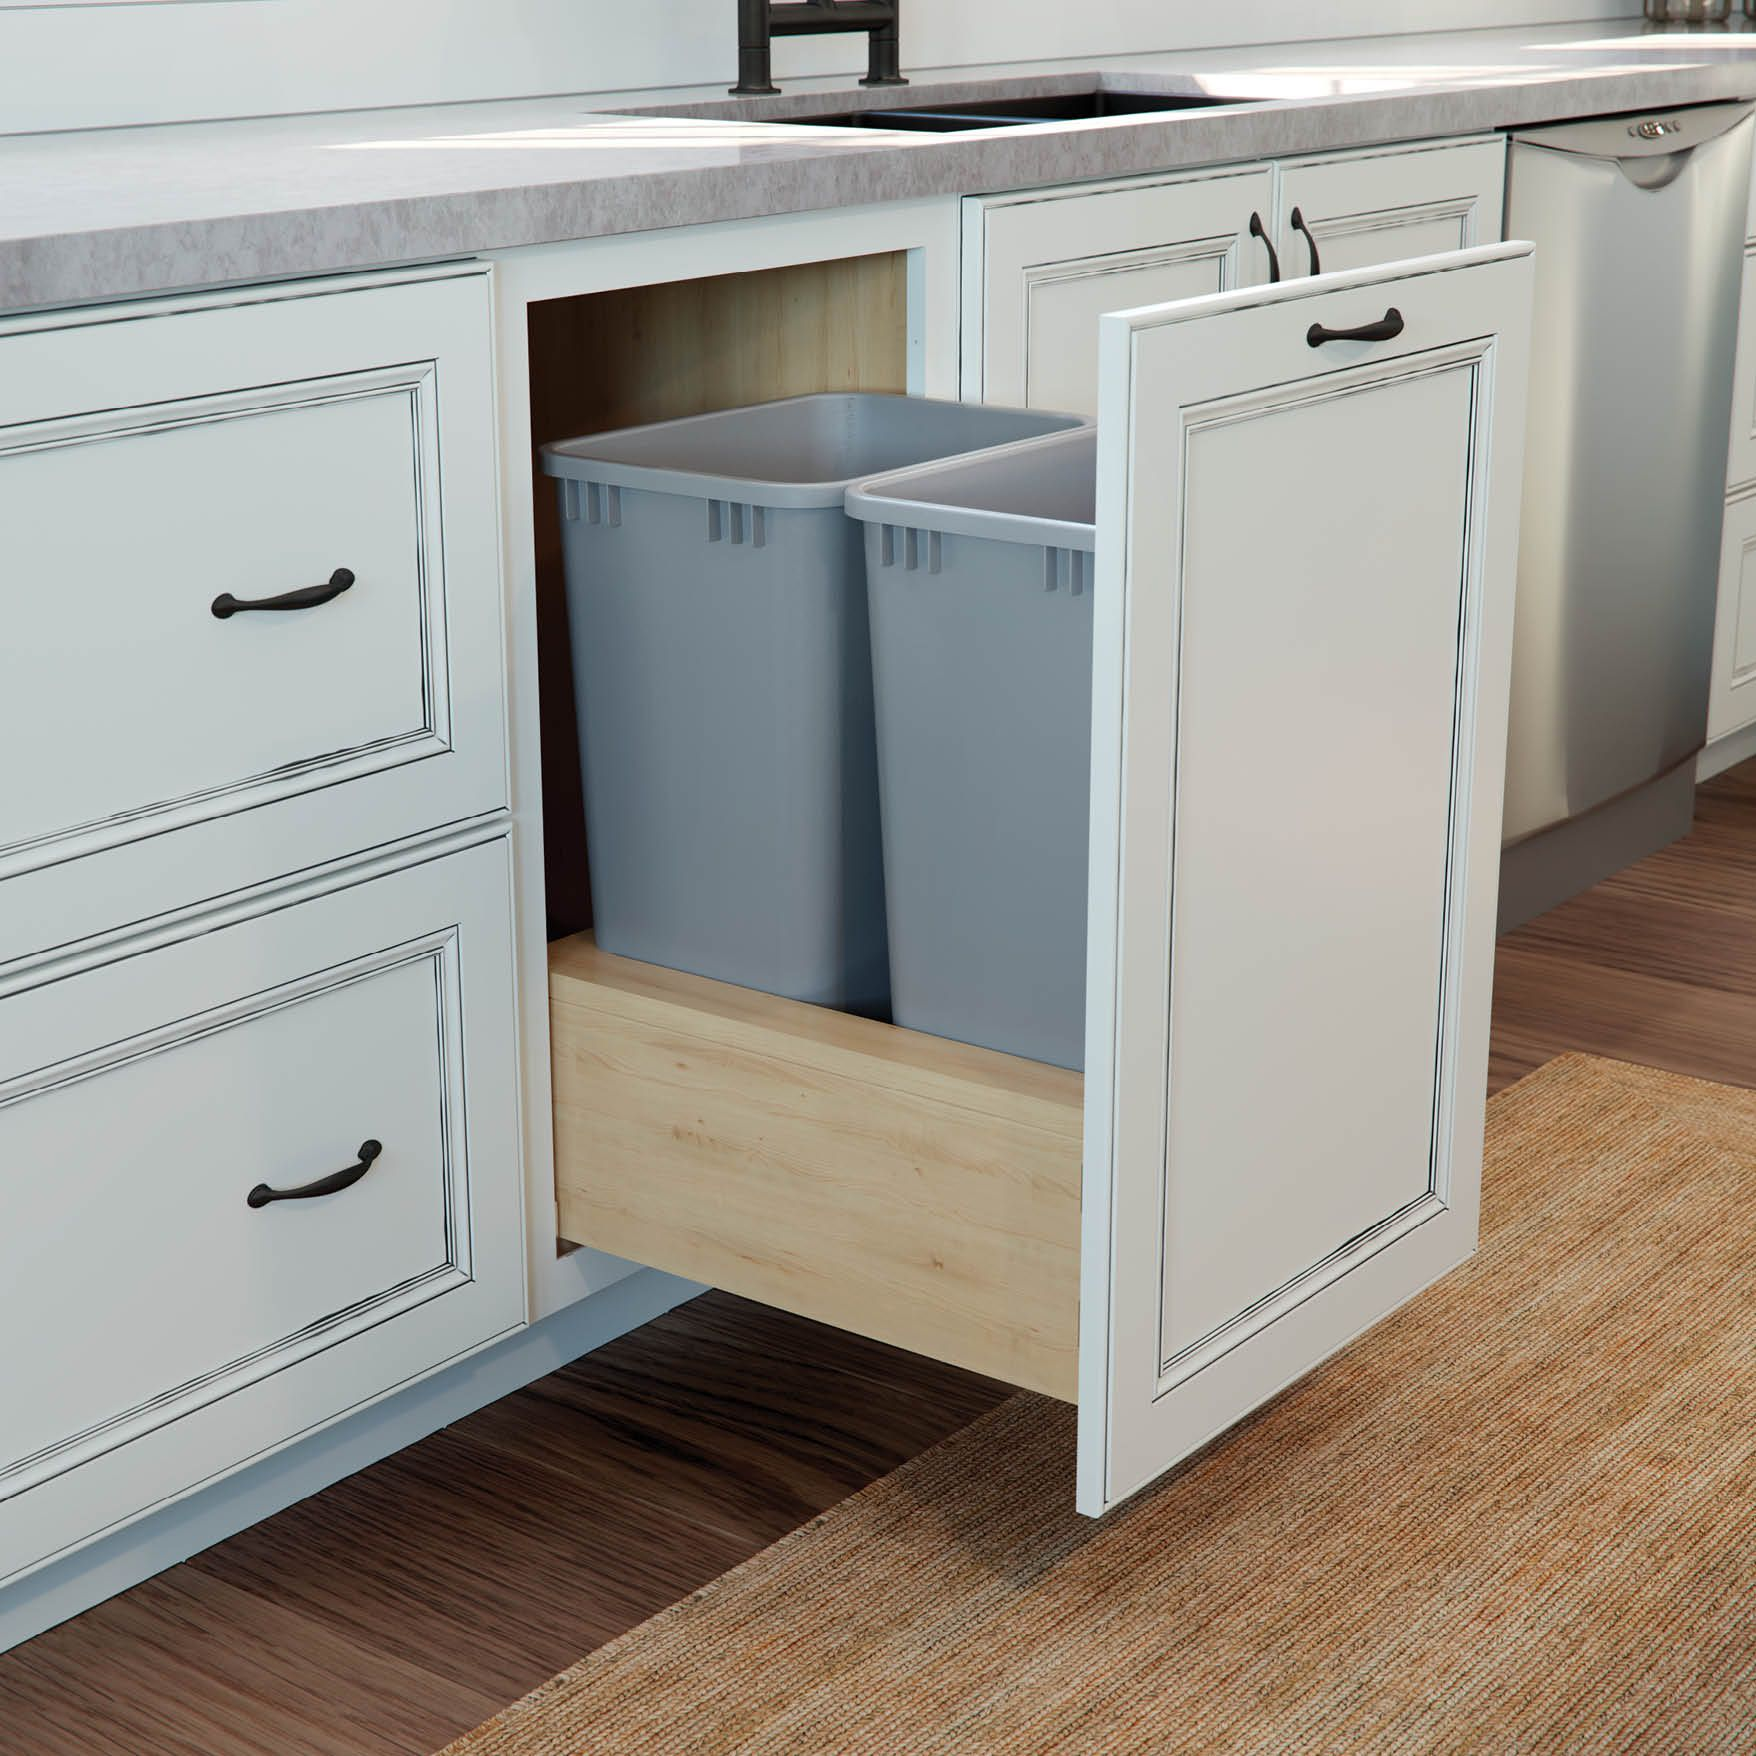 We Love This Hidden Organizational Gem Our Pull Out Base Wastebasket Cabinet Makes It Easy And Convenient To R Bath Organization Kitchen And Bath Waste Basket